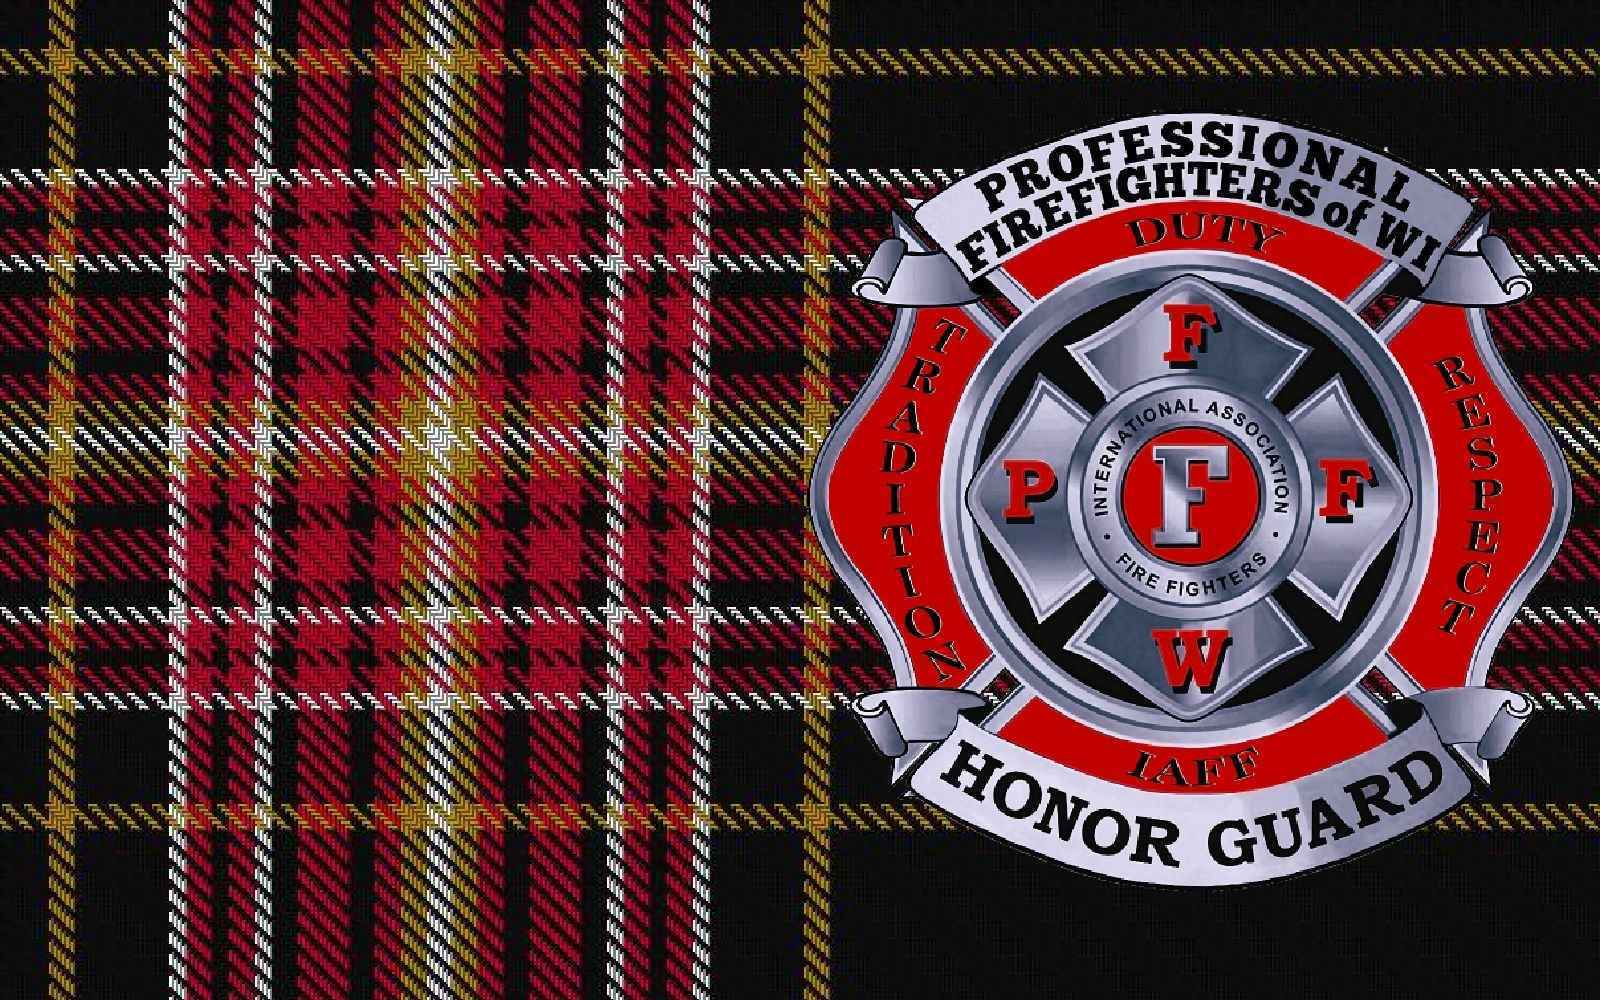 Give today to support the PFFW Honor Guard. image